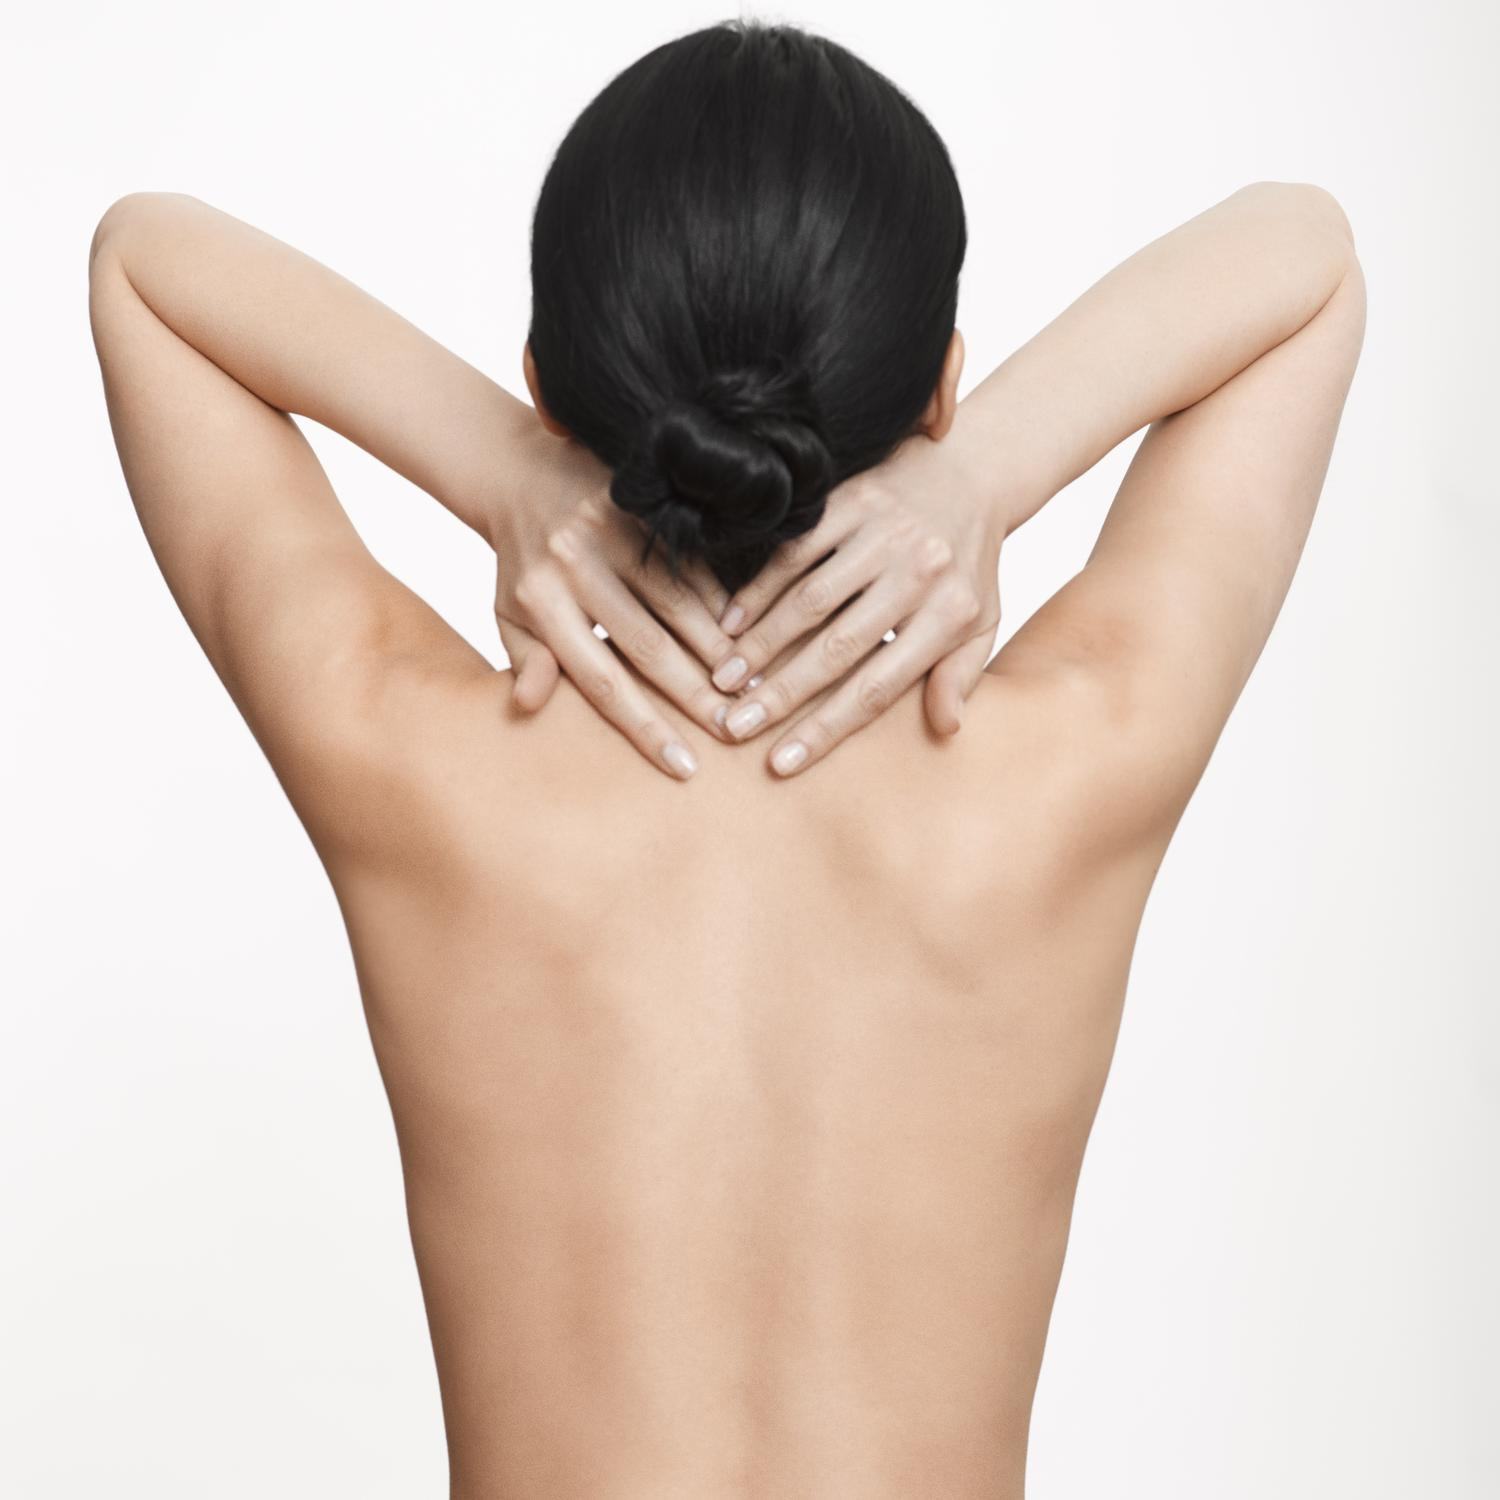 how to get relief from body pain